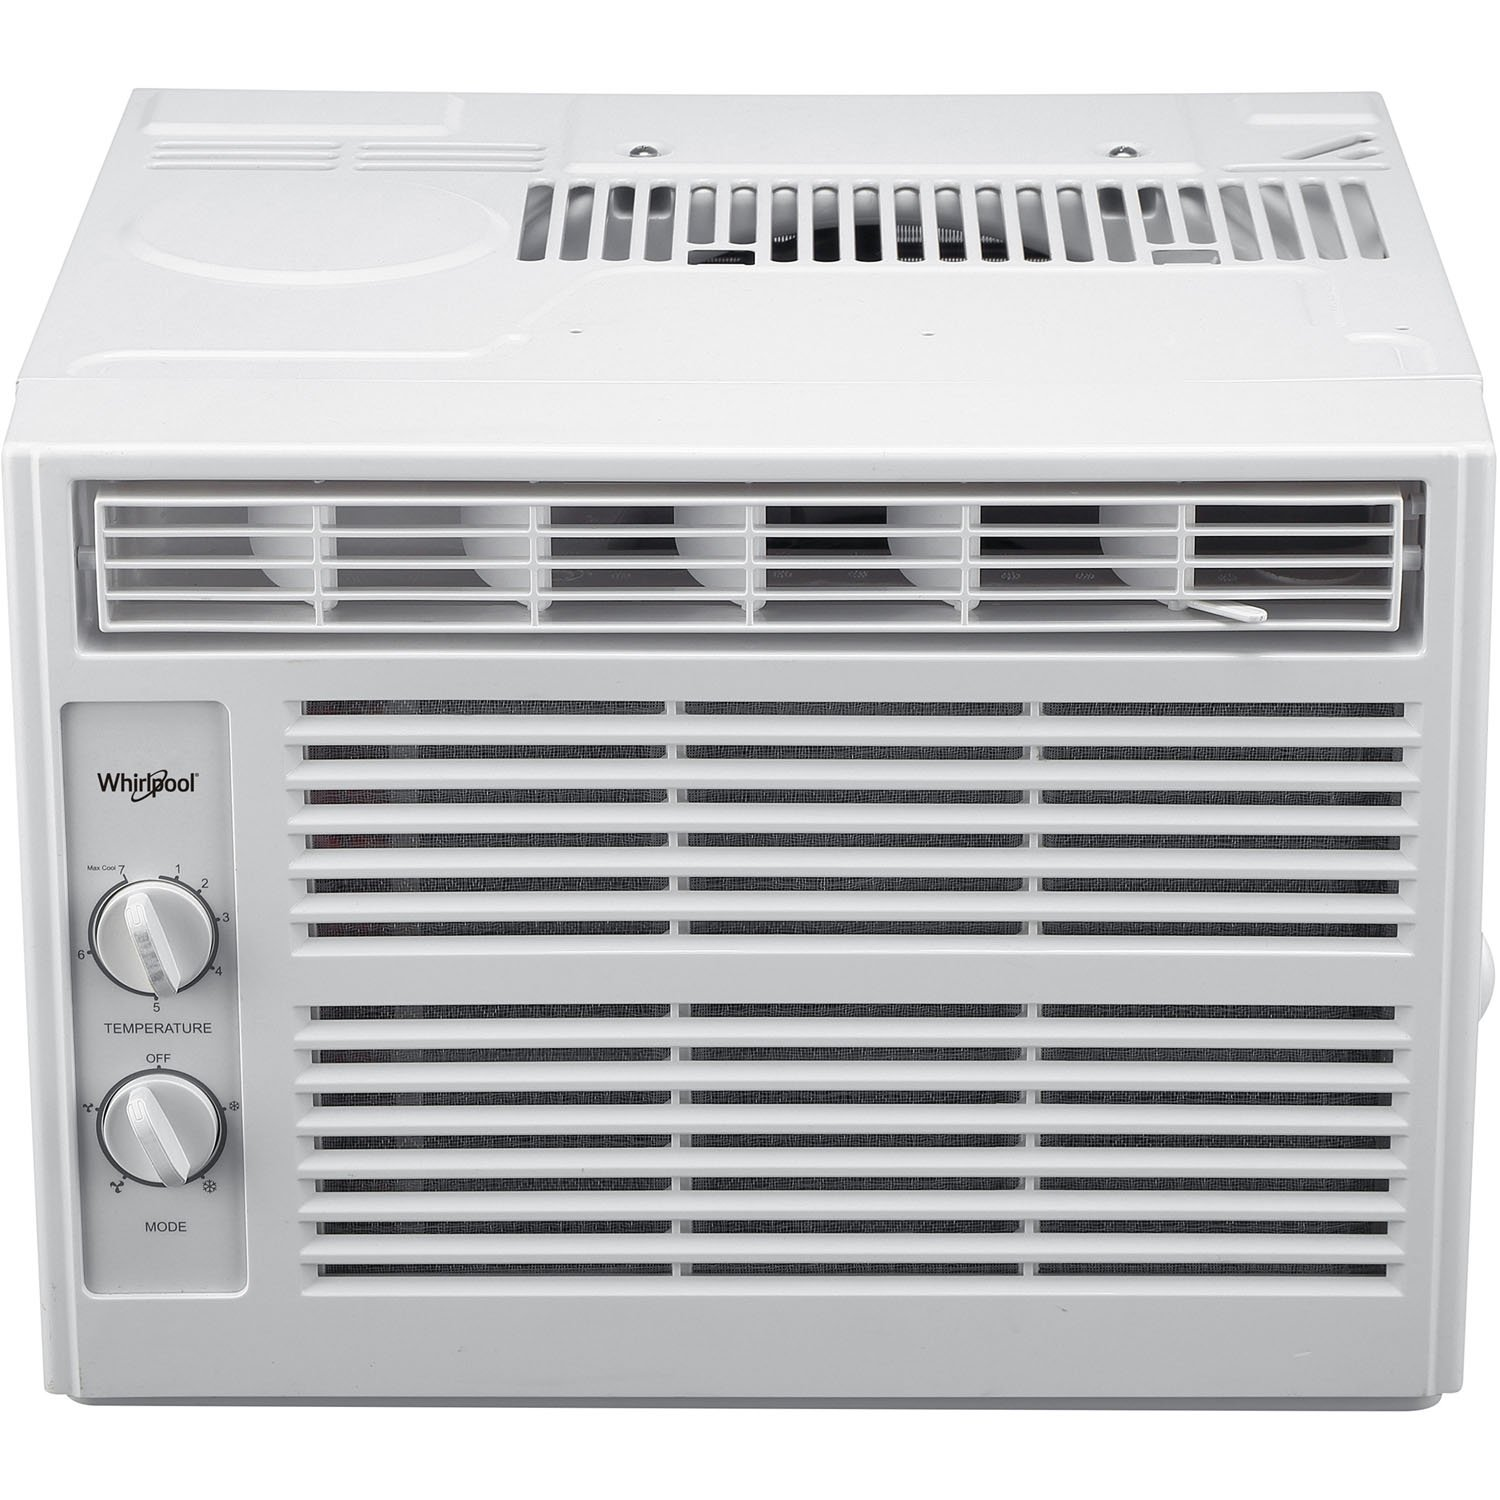 Whirlpool 5,000 BTU 115V Window-Mounted Air Conditioner with Mechanical Controls, White by Whirlpool